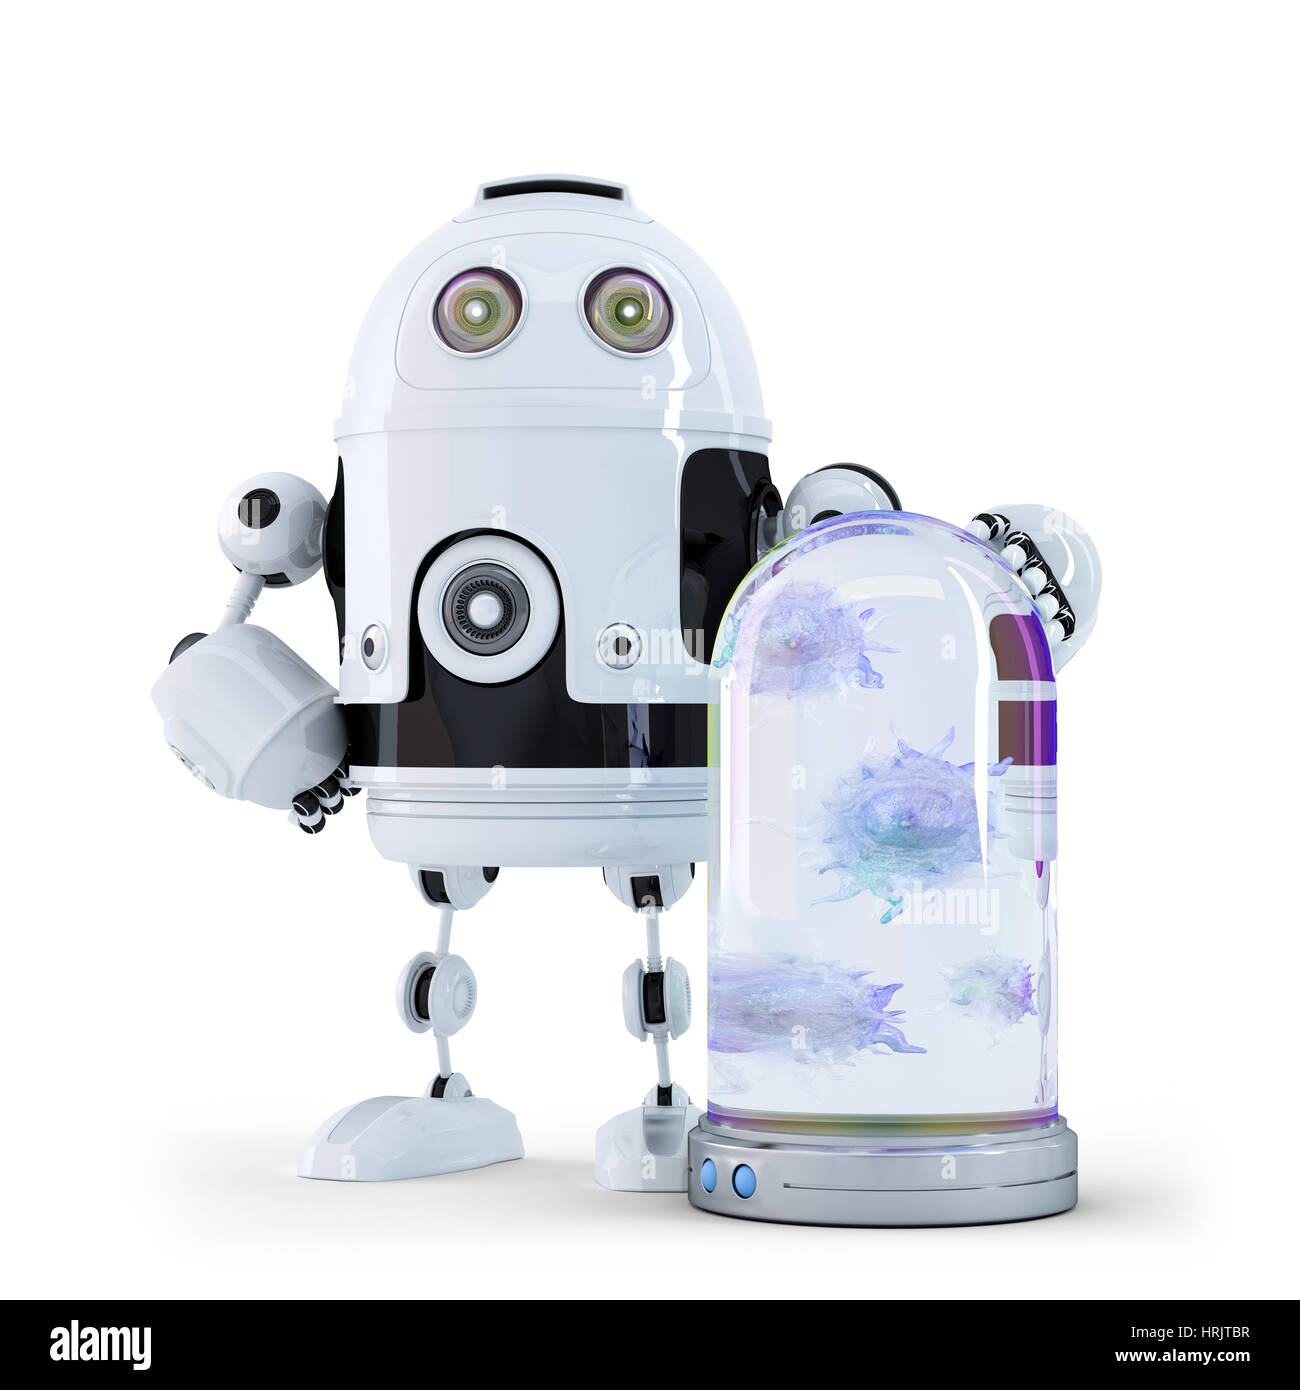 Robot and viruses caught in the container. Technology concep - Stock Image